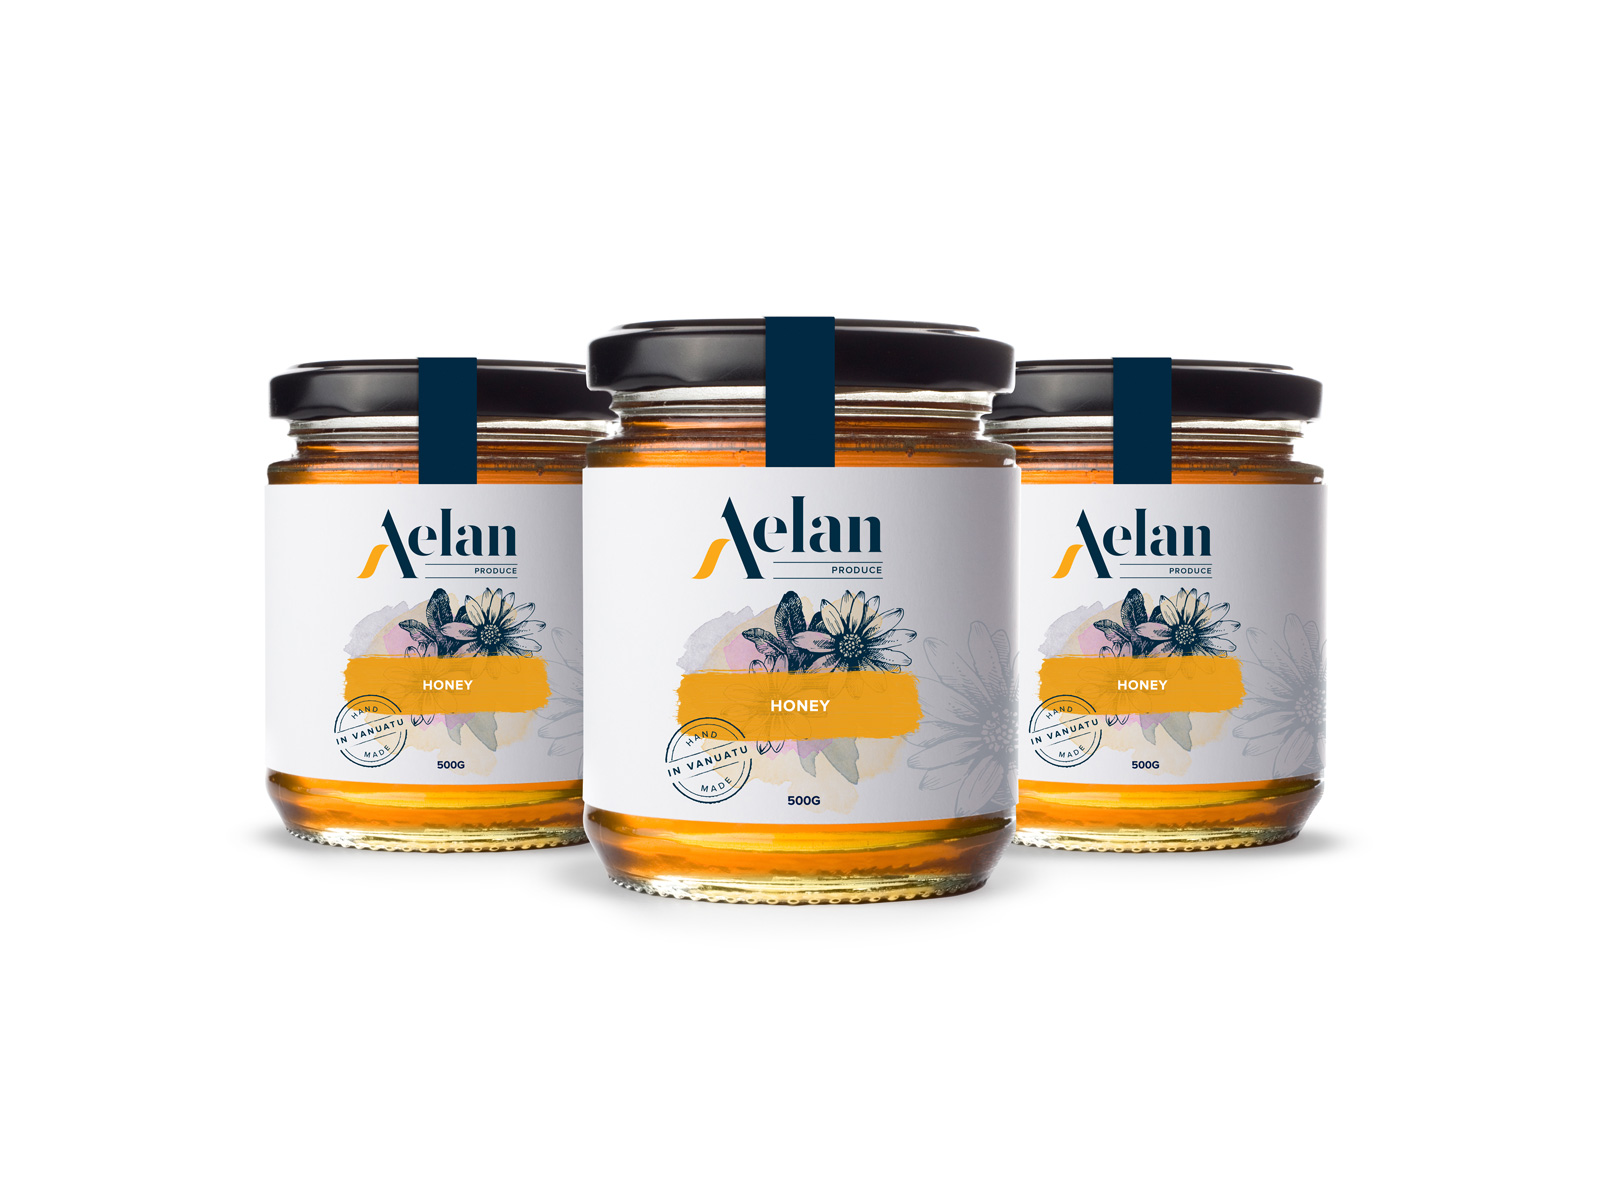 Aelan-honey-jars